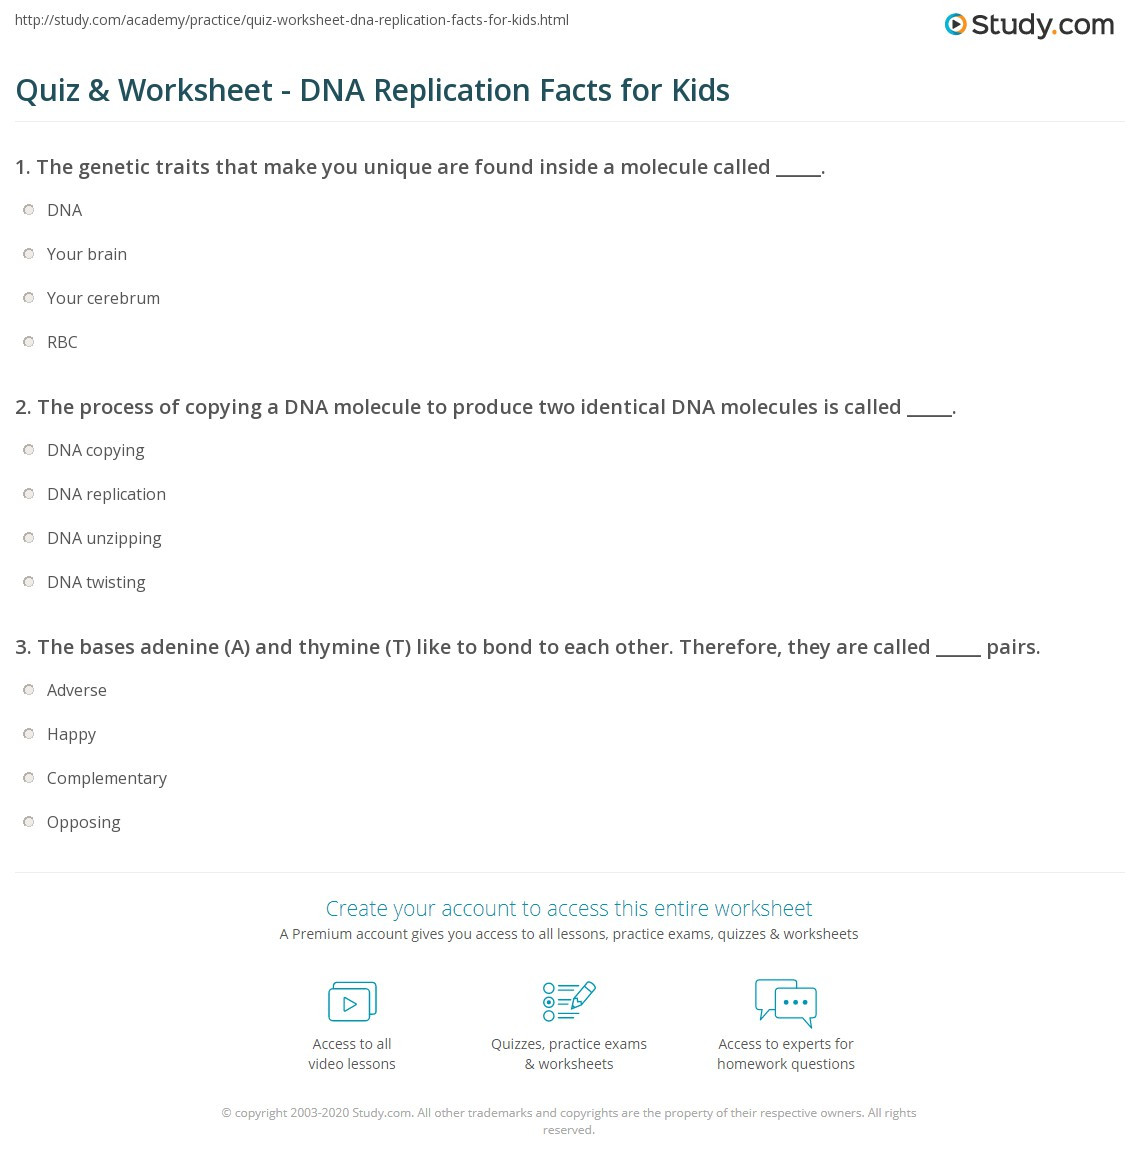 Dna Base Pairing Worksheet Answers Quiz & Worksheet Dna Replication Facts for Kids